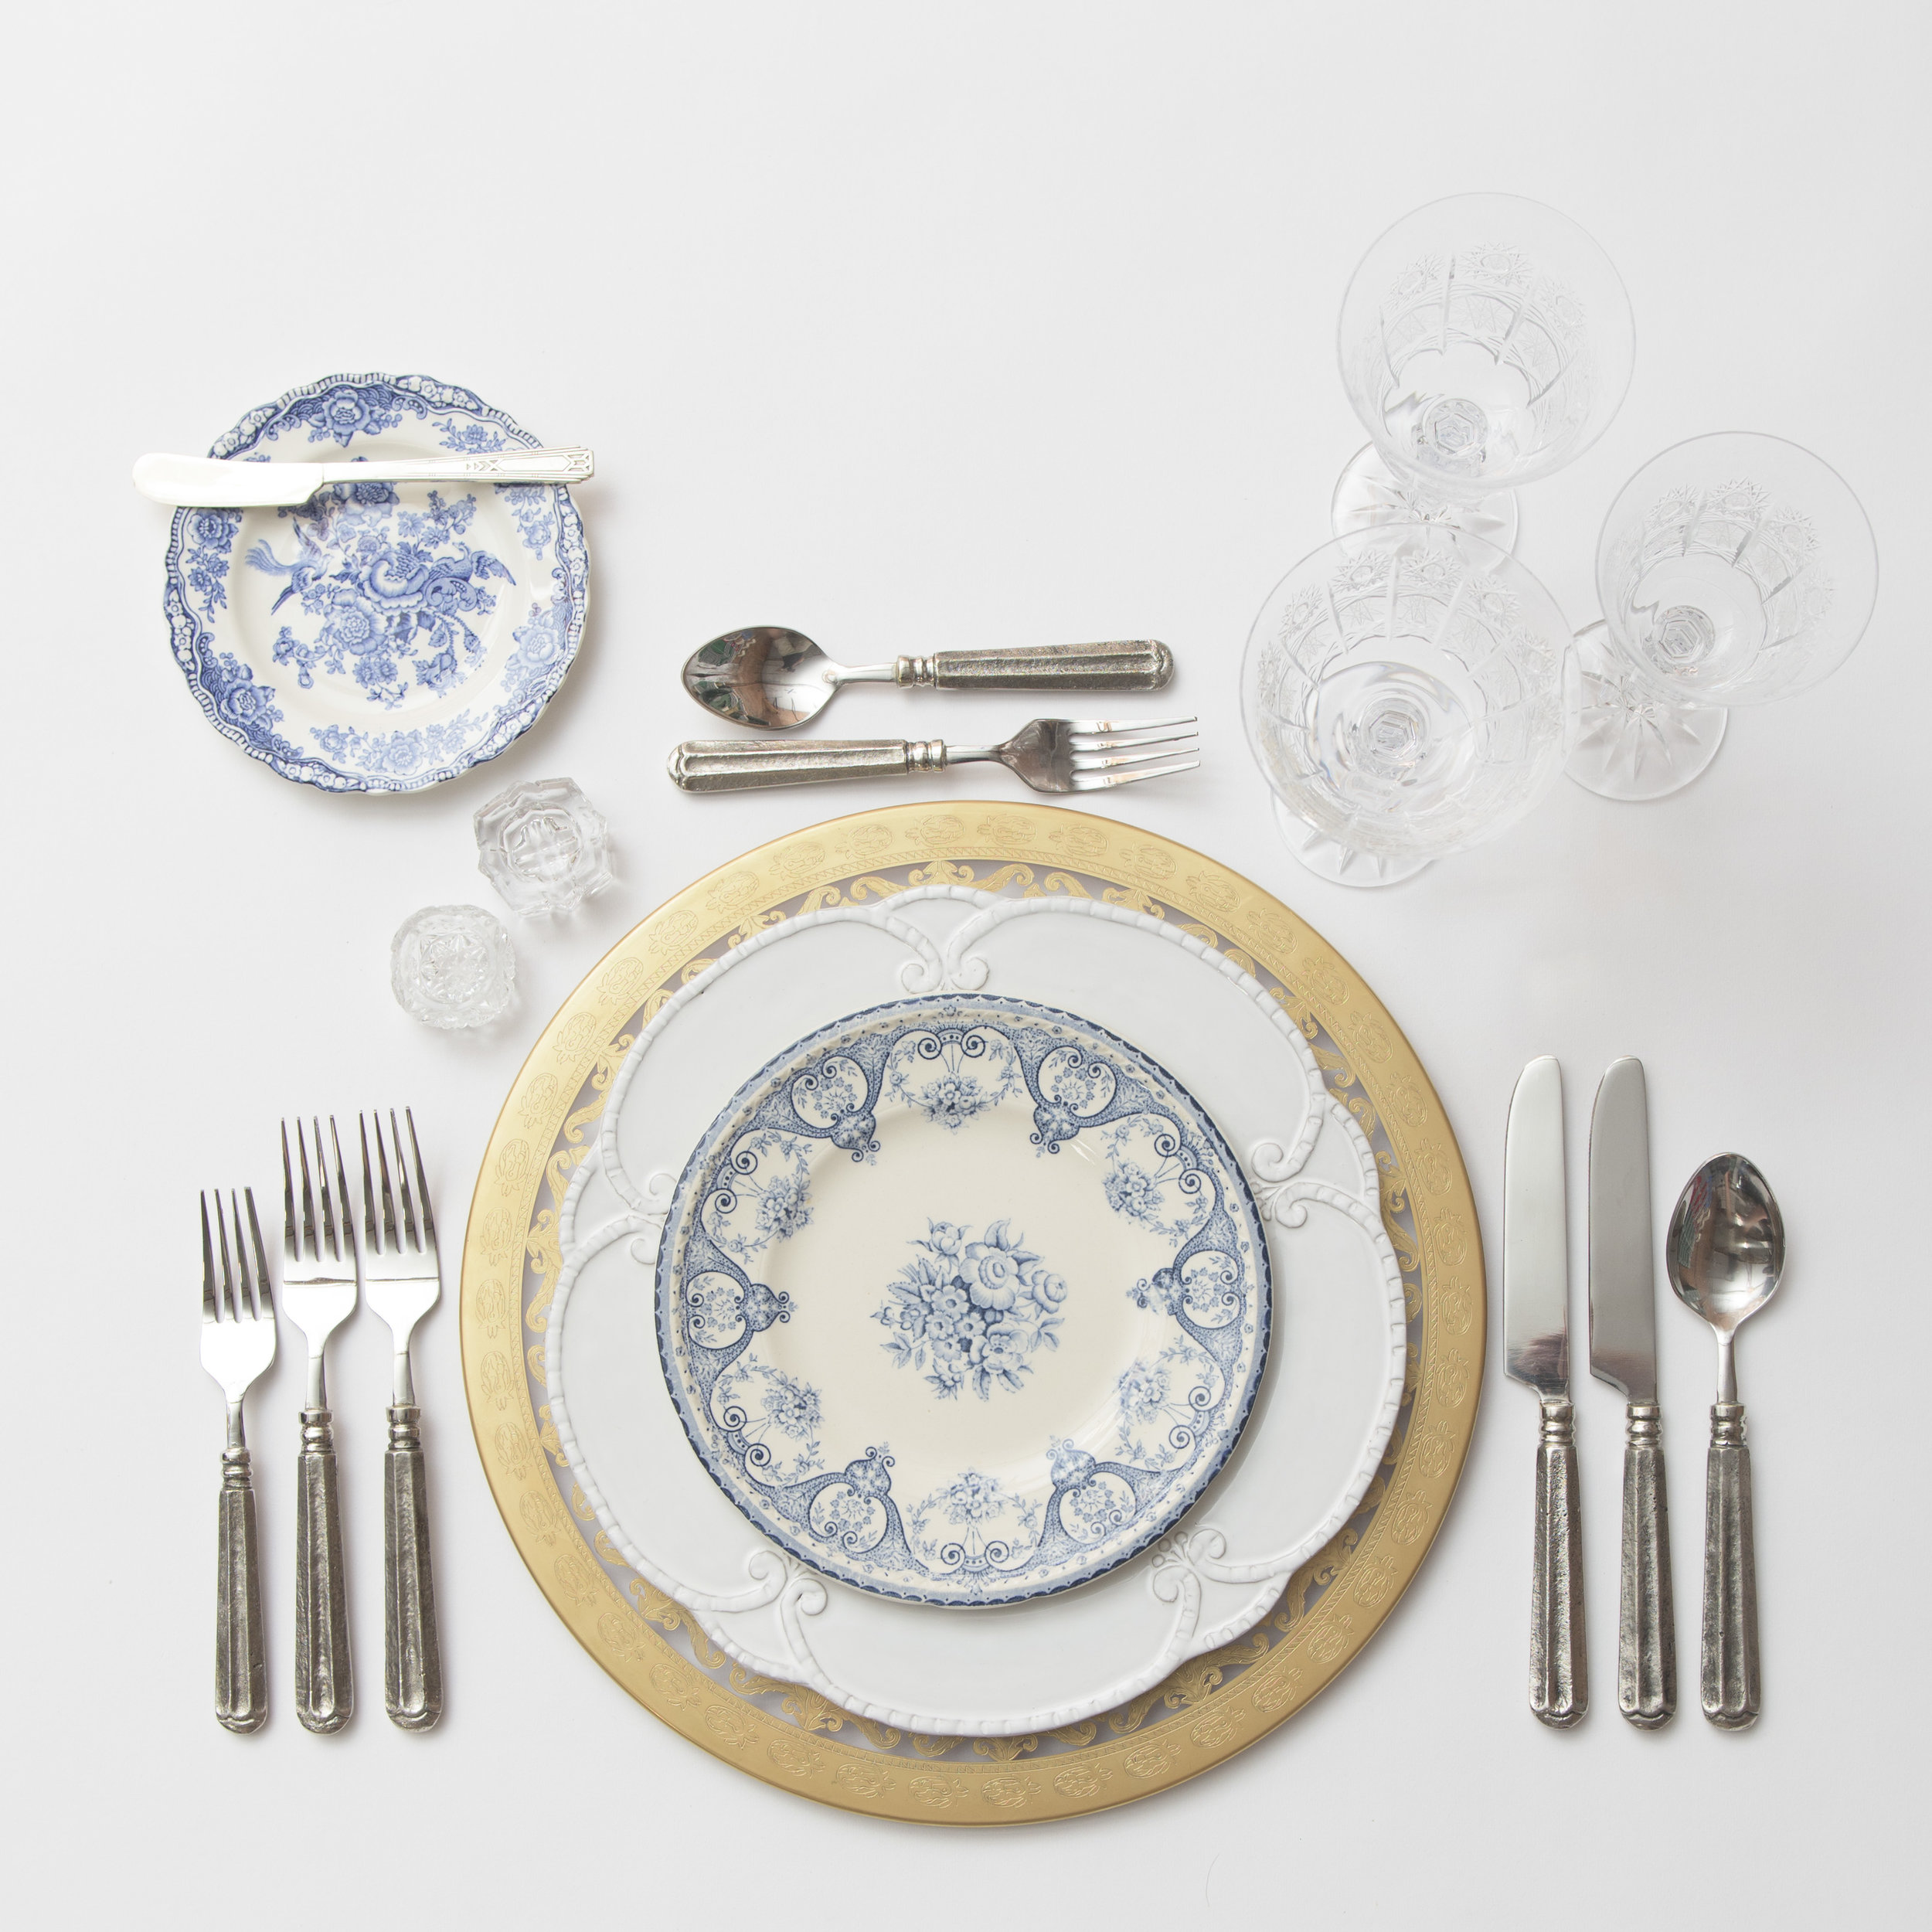 RENT: Versailles Glass Chargers in 24k Gold + Signature Collection Dinnerware + Blue Garden Collection Vintage China + Tuscan Flatware in Pewter + Czech Crystal Stemware + Antique Crystal Salt Cellars